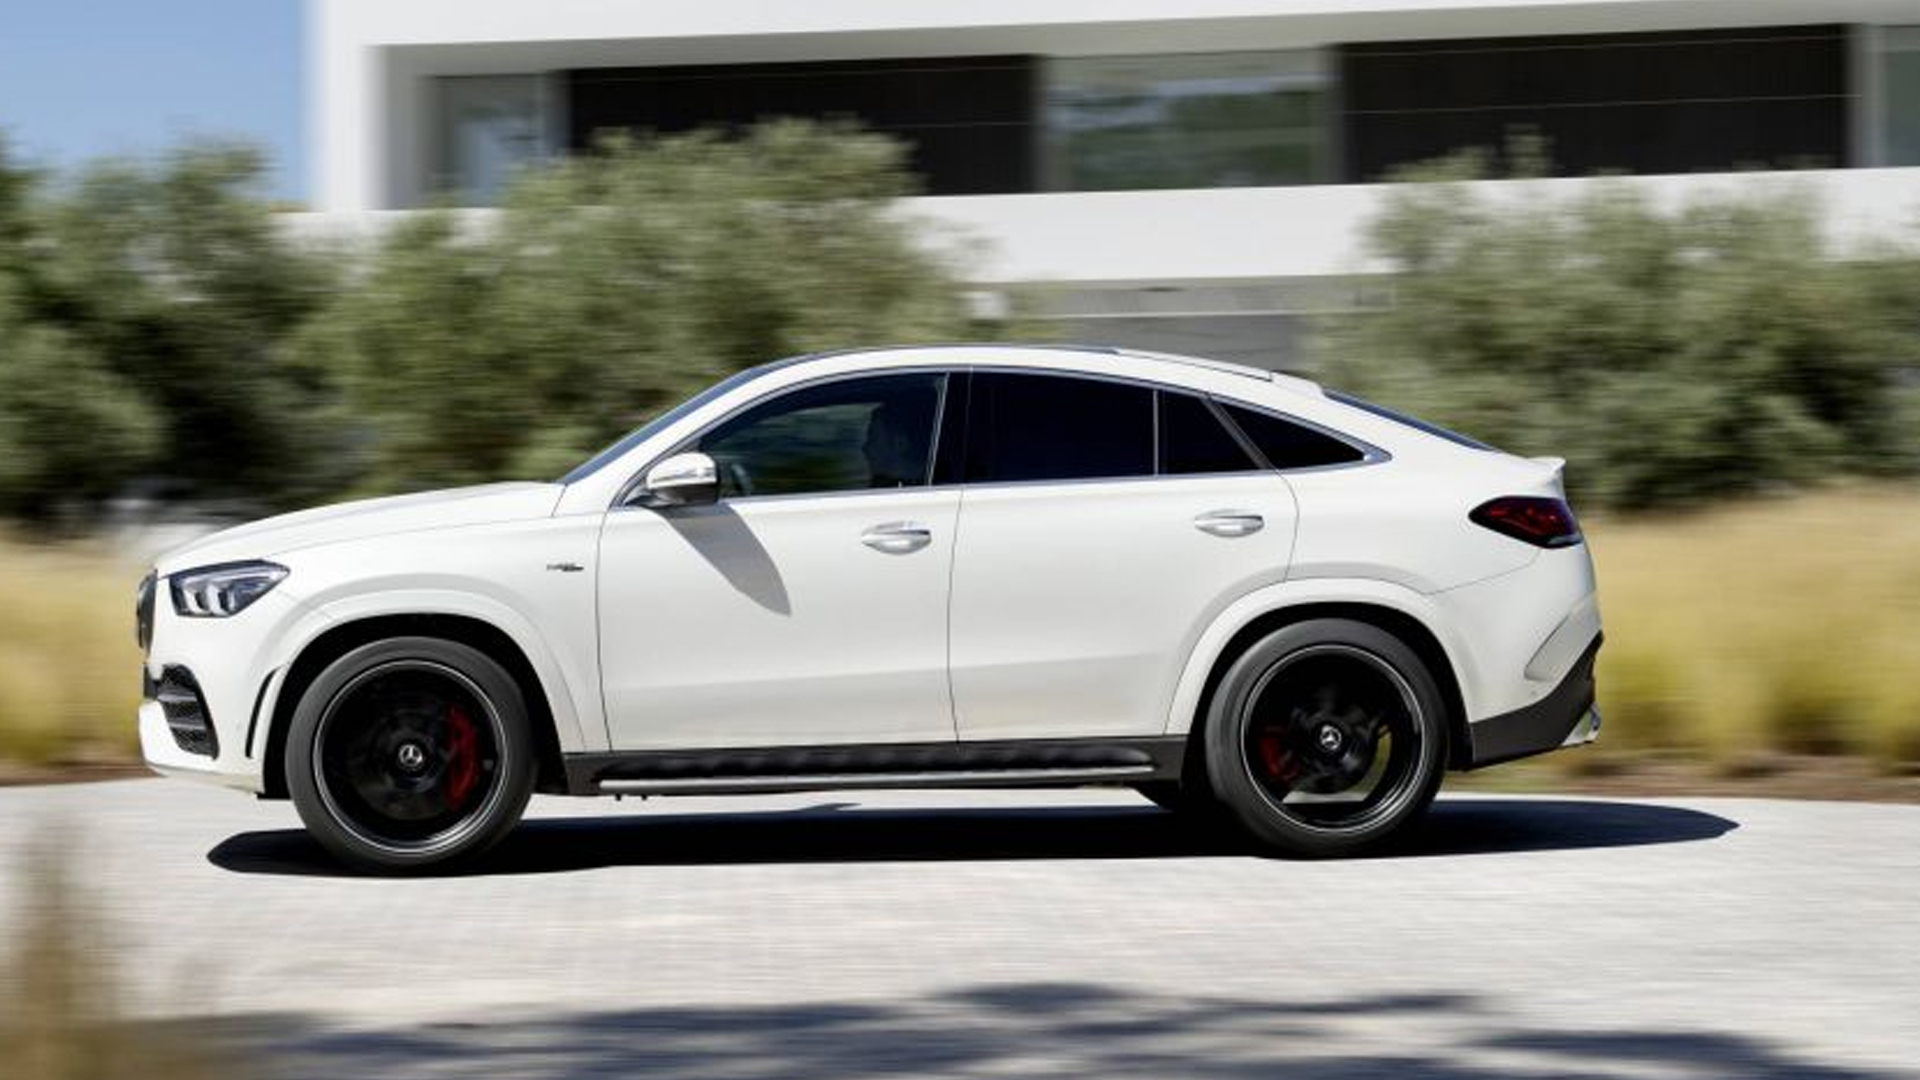 Mercedes Benz GLE 53 AMG Coupe 2020 STD Exterior